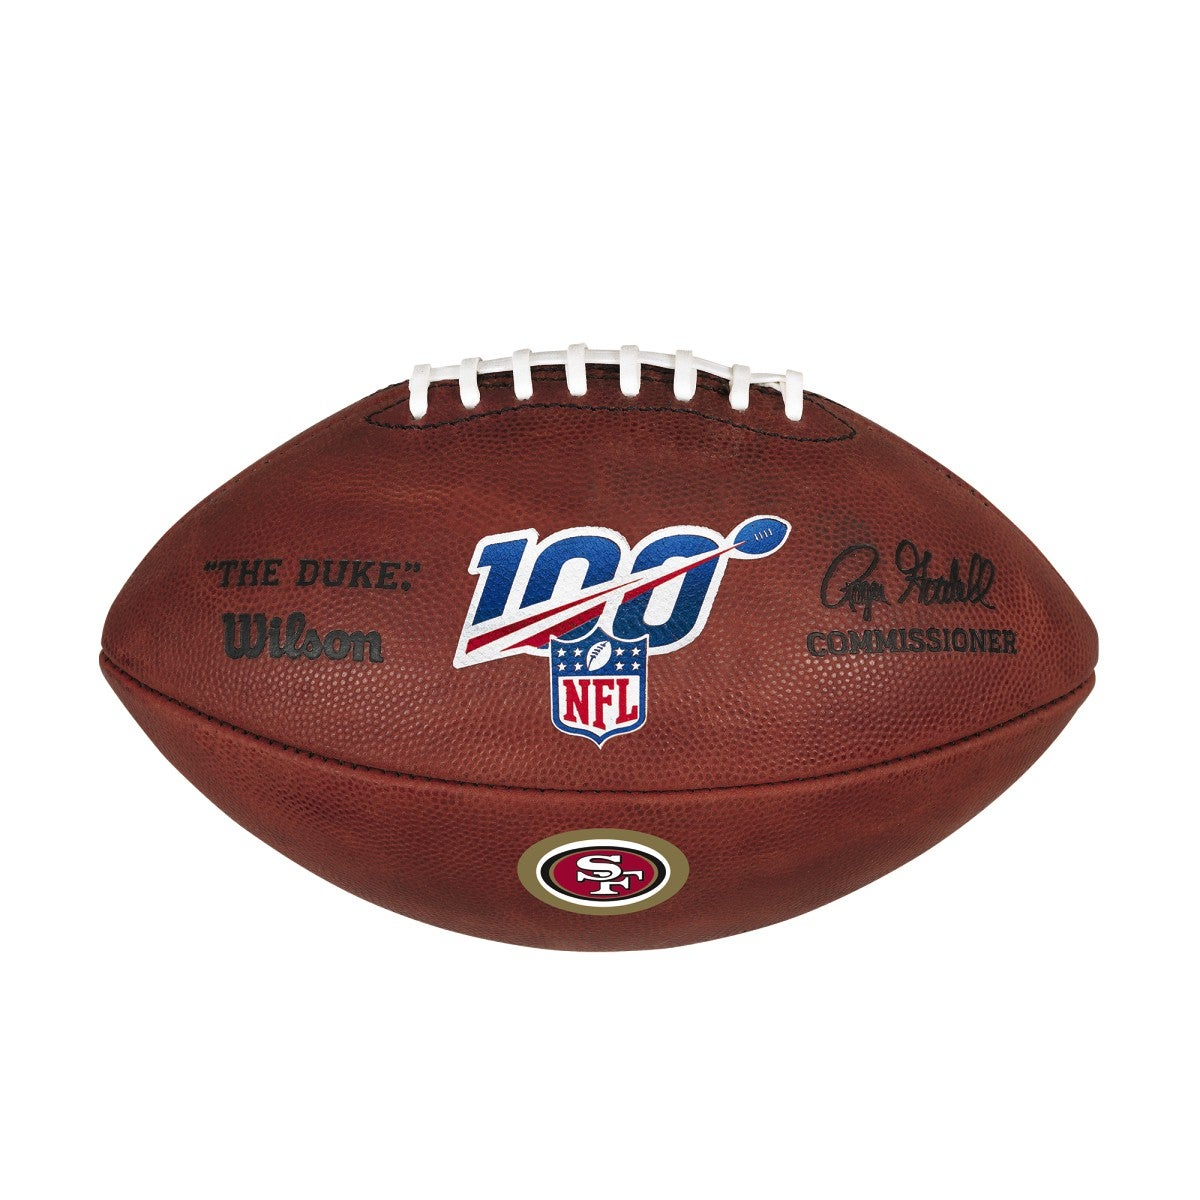 NFL 100 THE DUKE DECAL NFL FOOTBALL - SAN FRANCISCO 49ERS